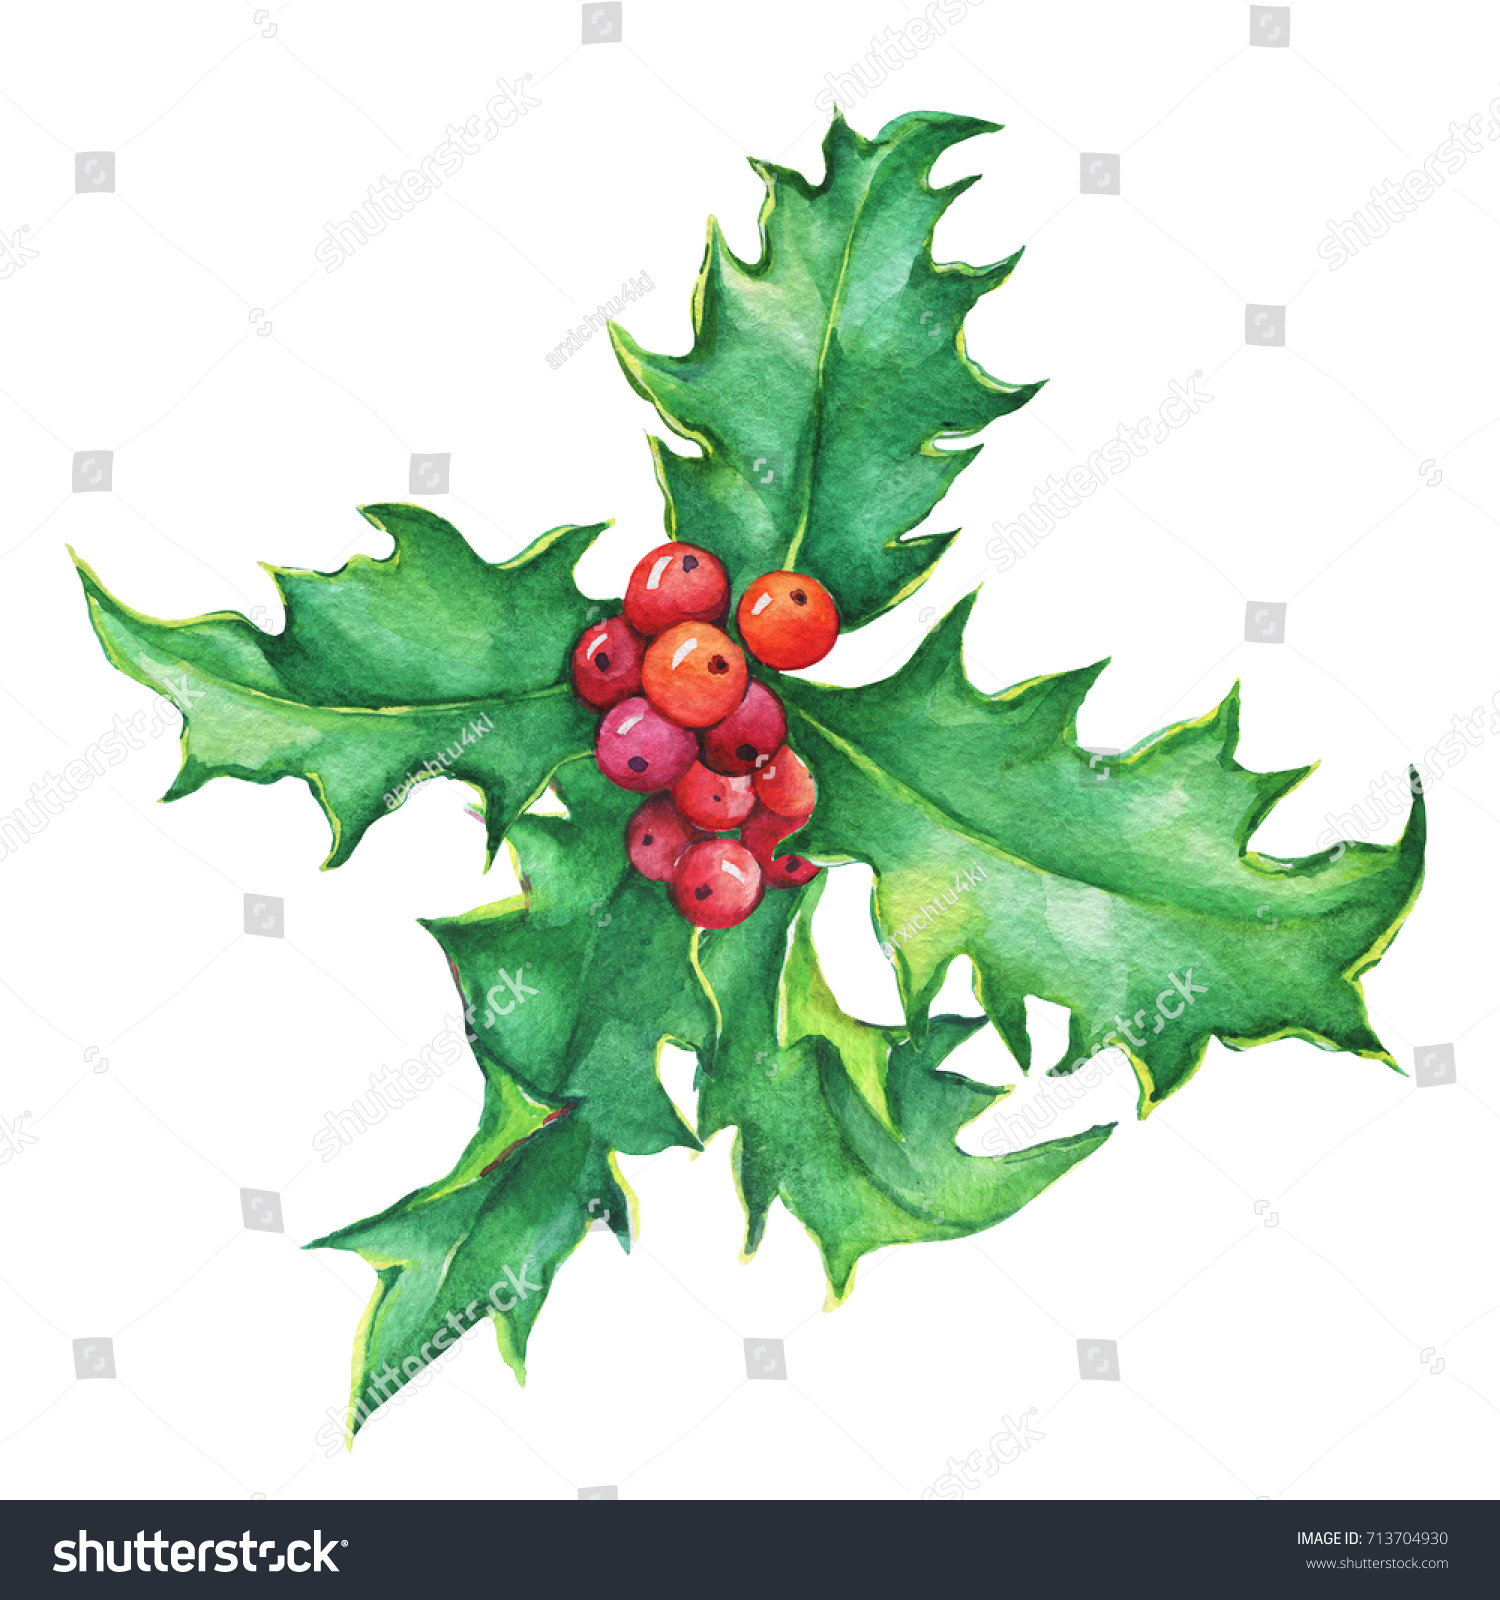 Why is holly a traditional christmas decoration - Holly Ilex Holiday Traditional Christmas Decoration For Greeting Card Invitation